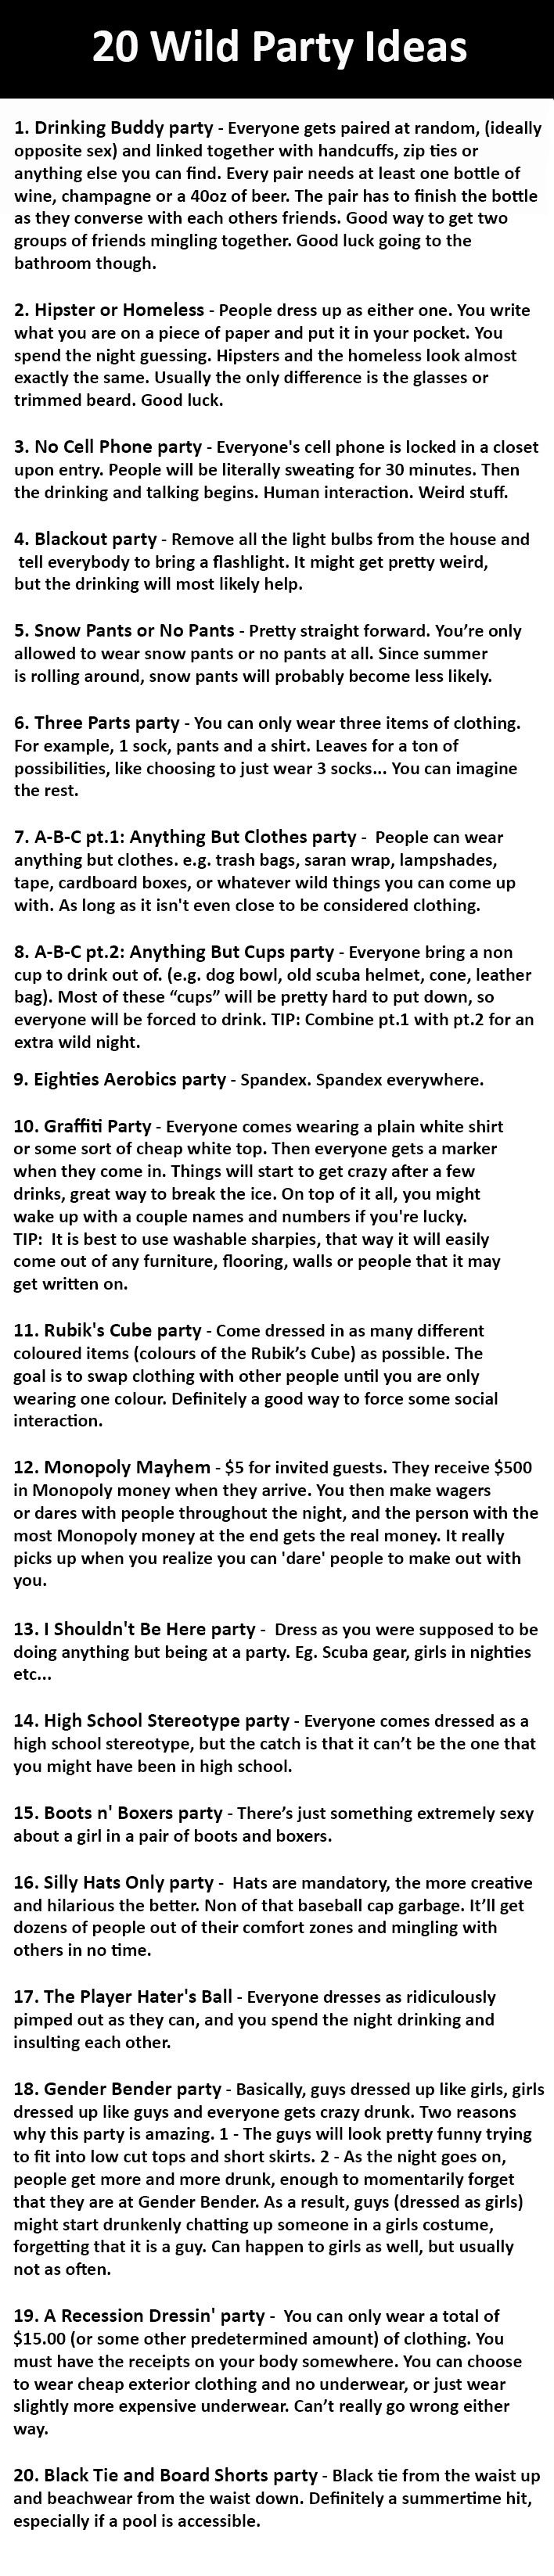 20 Wild Party Ideas, but pinning because some of these would make good programs (minus the alcohol.)